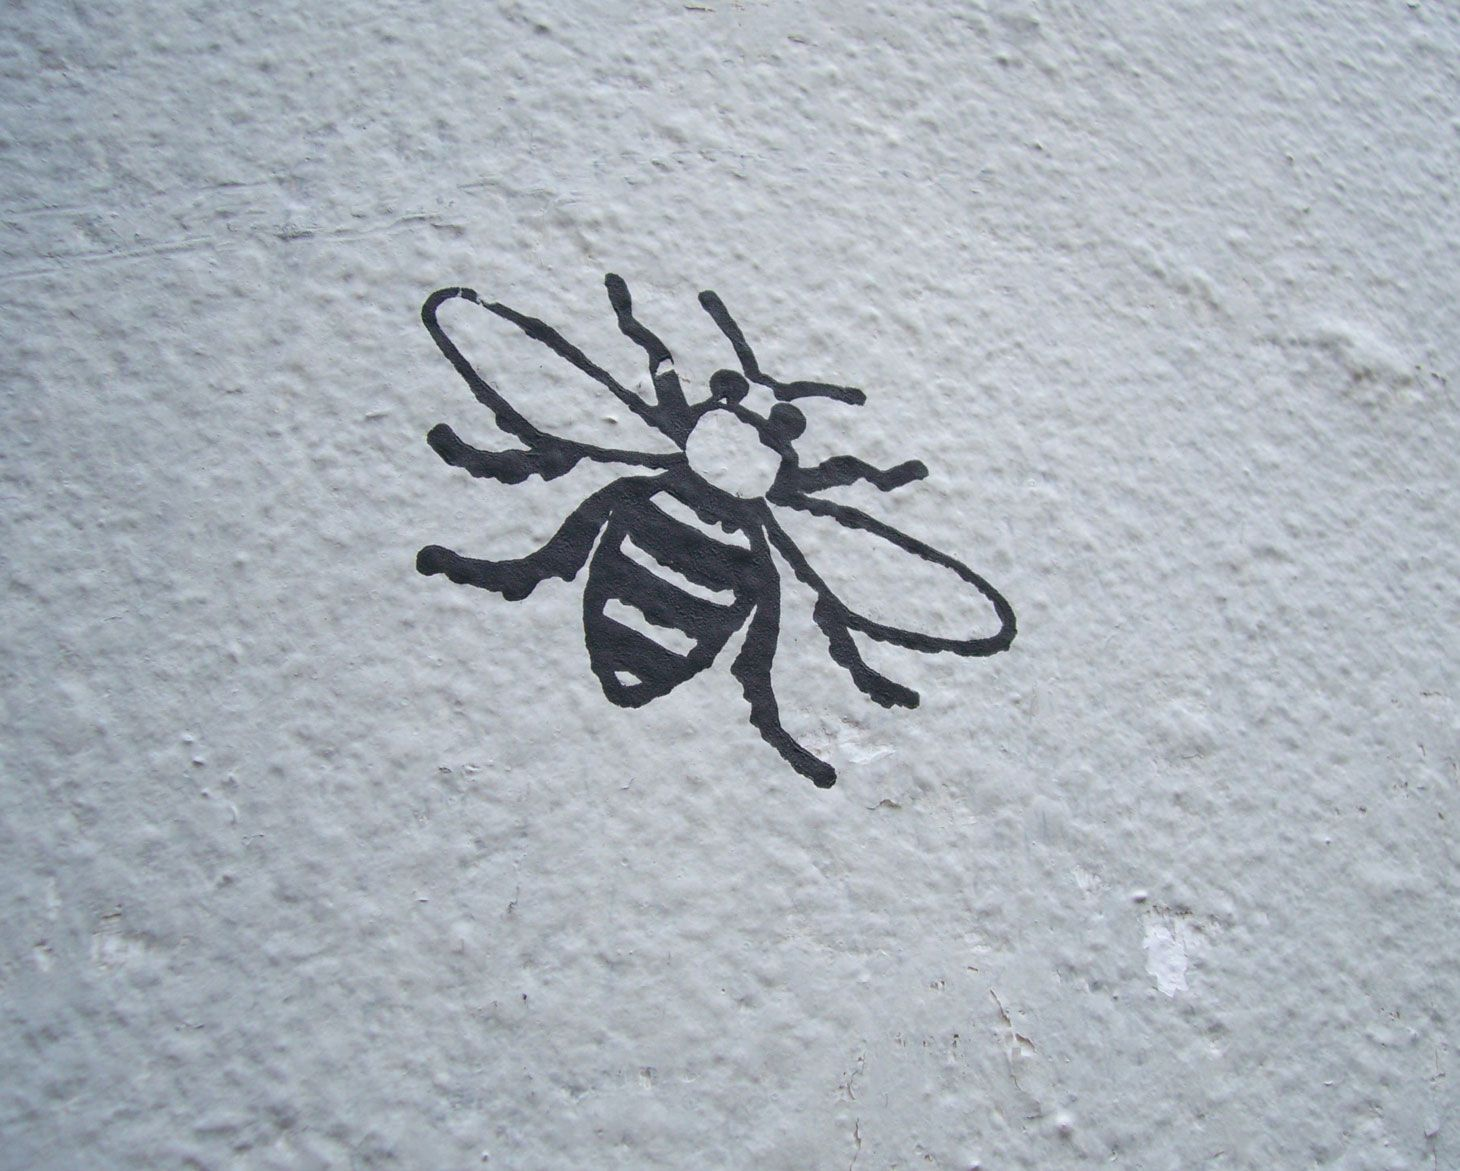 manchester bee graffiti tattoodles pinterest graffiti bees and tattoo. Black Bedroom Furniture Sets. Home Design Ideas